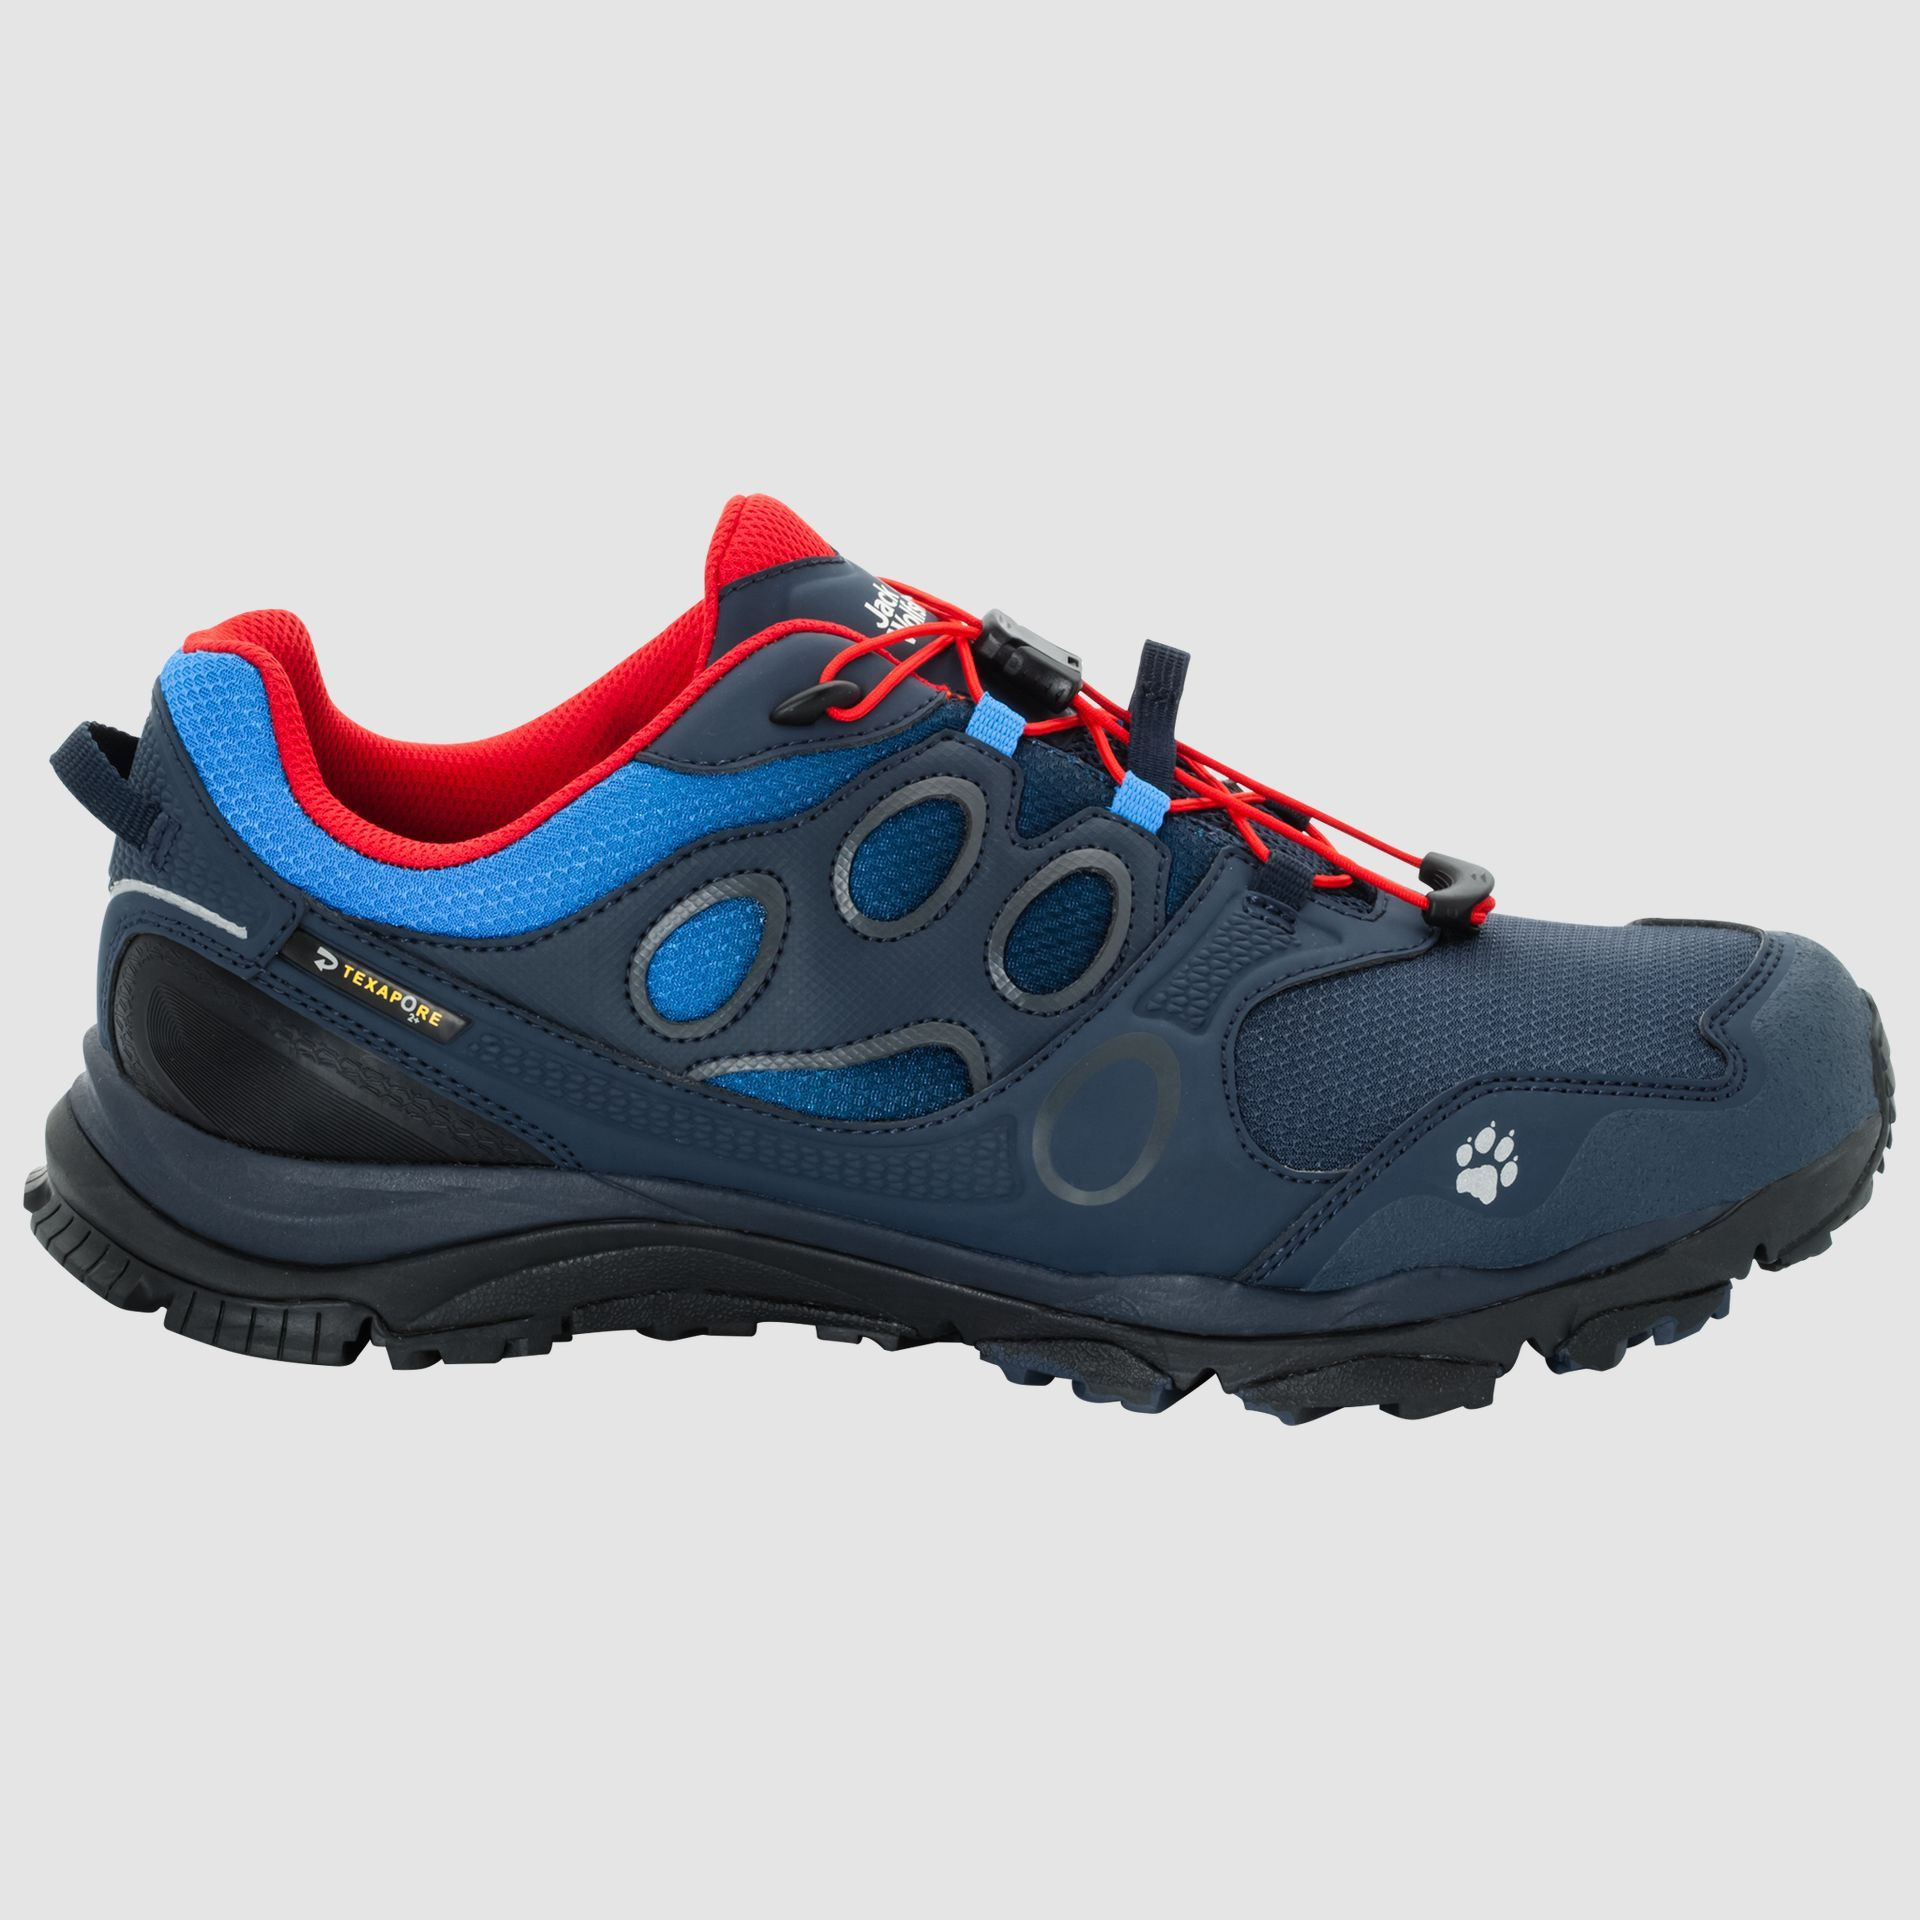 €149.95 Jack Wolfskin TRAIL EXCITE 2 TEXAPORE LOW M